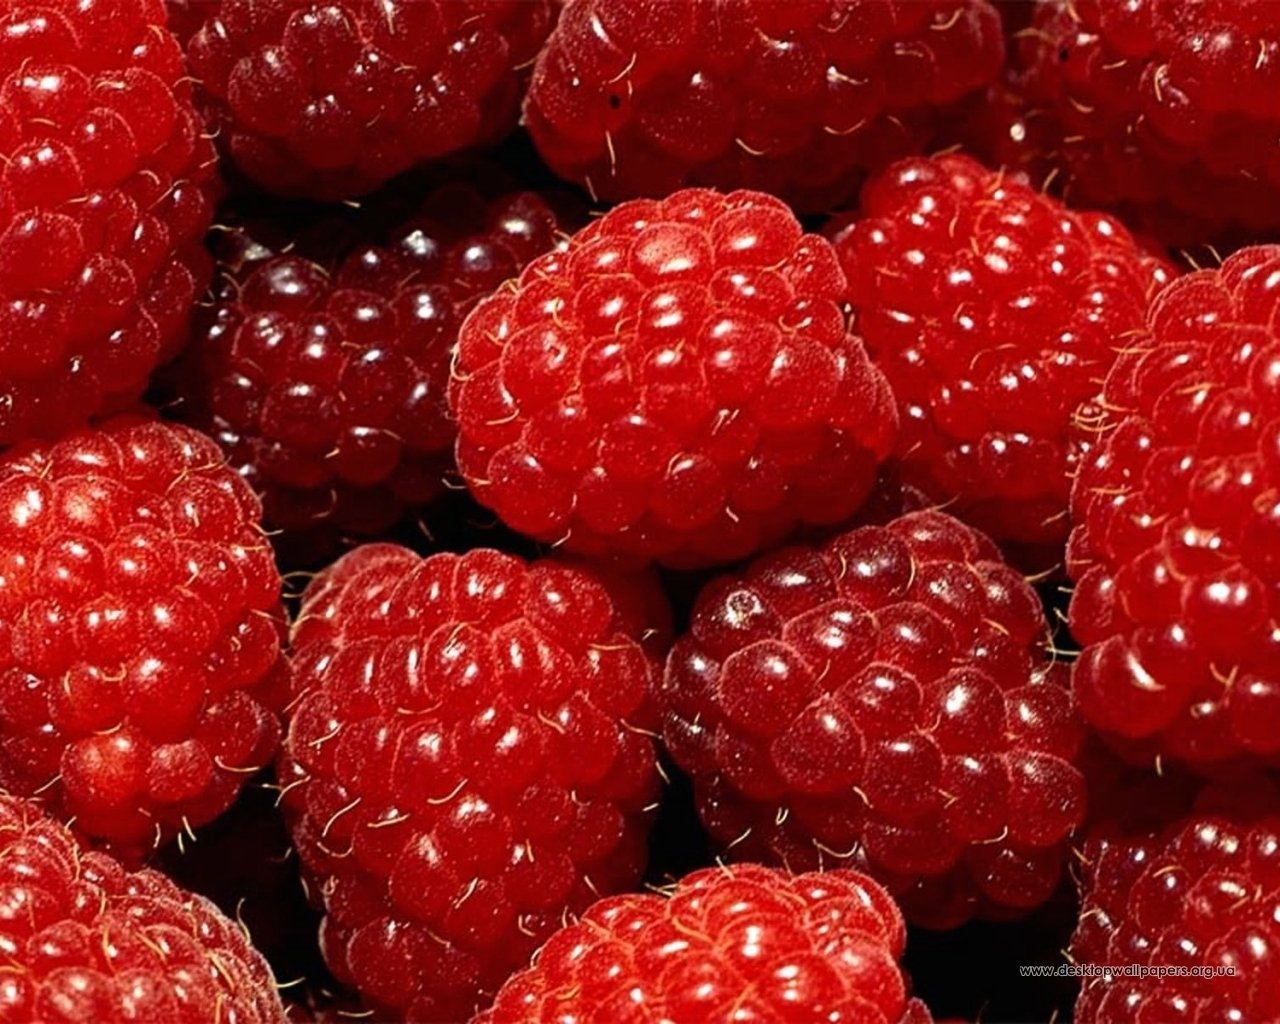 8529 download wallpaper Food, Background, Raspberry, Berries screensavers and pictures for free